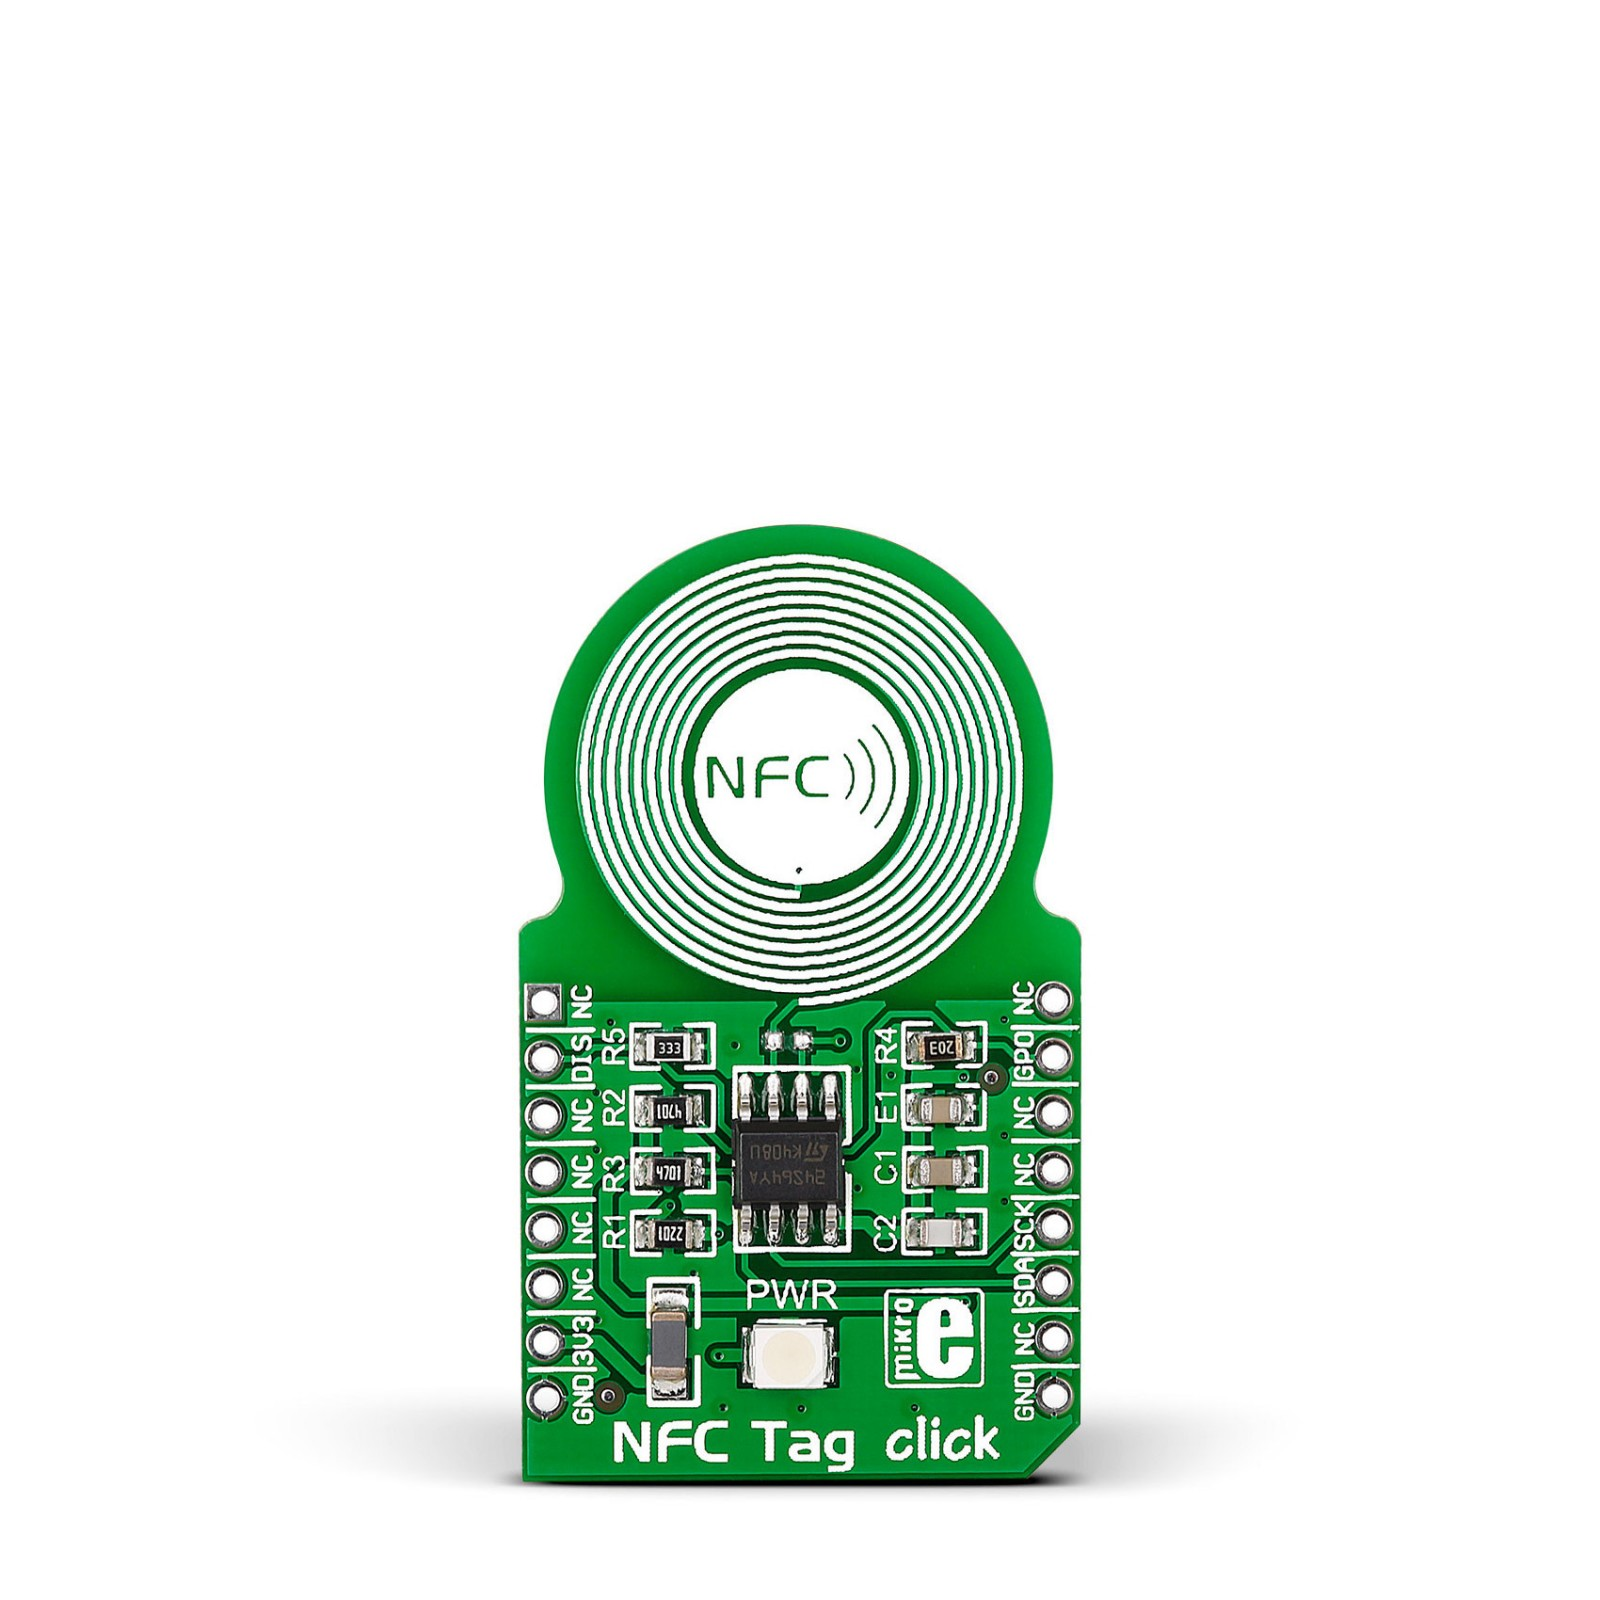 NFC Tag click carries an M24SR64 NFC/RFID tag IC with a dual